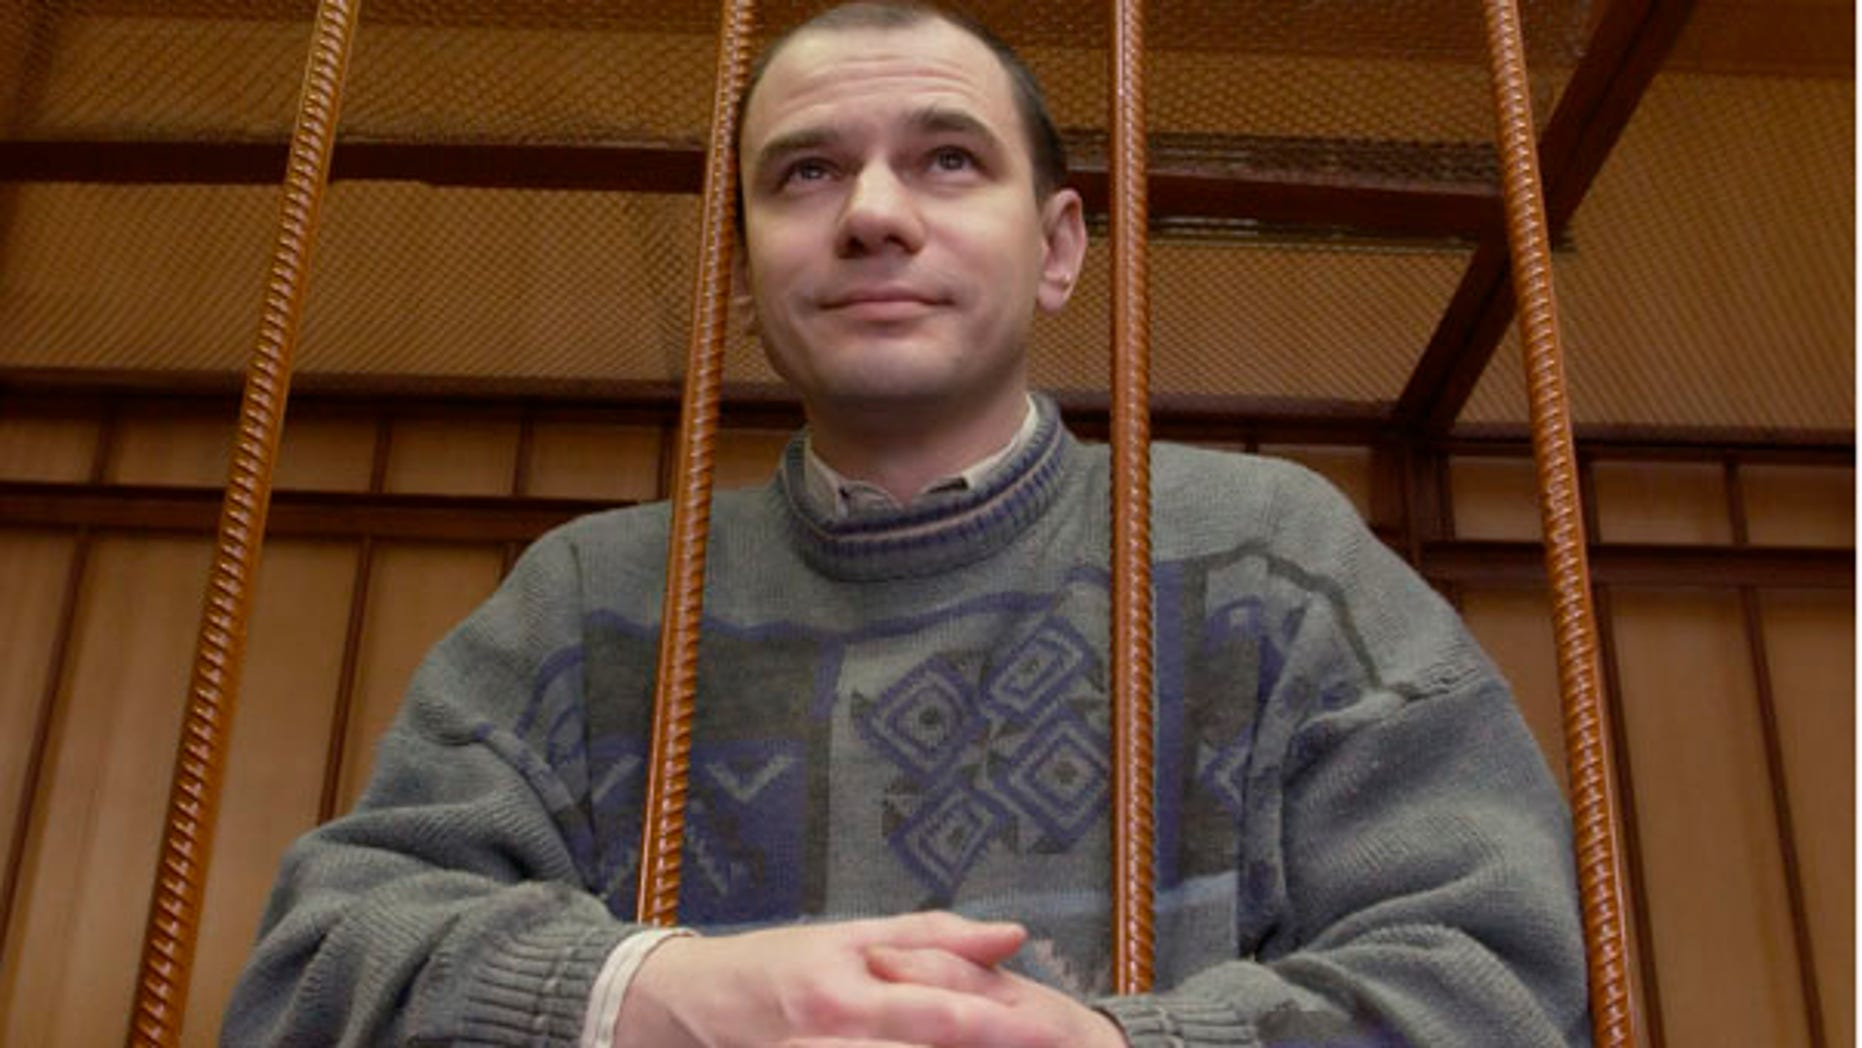 FILE: Russian arms control researcher Igor Sutyagin stands behind bars as he's sentenced to 15 years in prison for spying on April 7, 2004 in a Moscow courtroom.